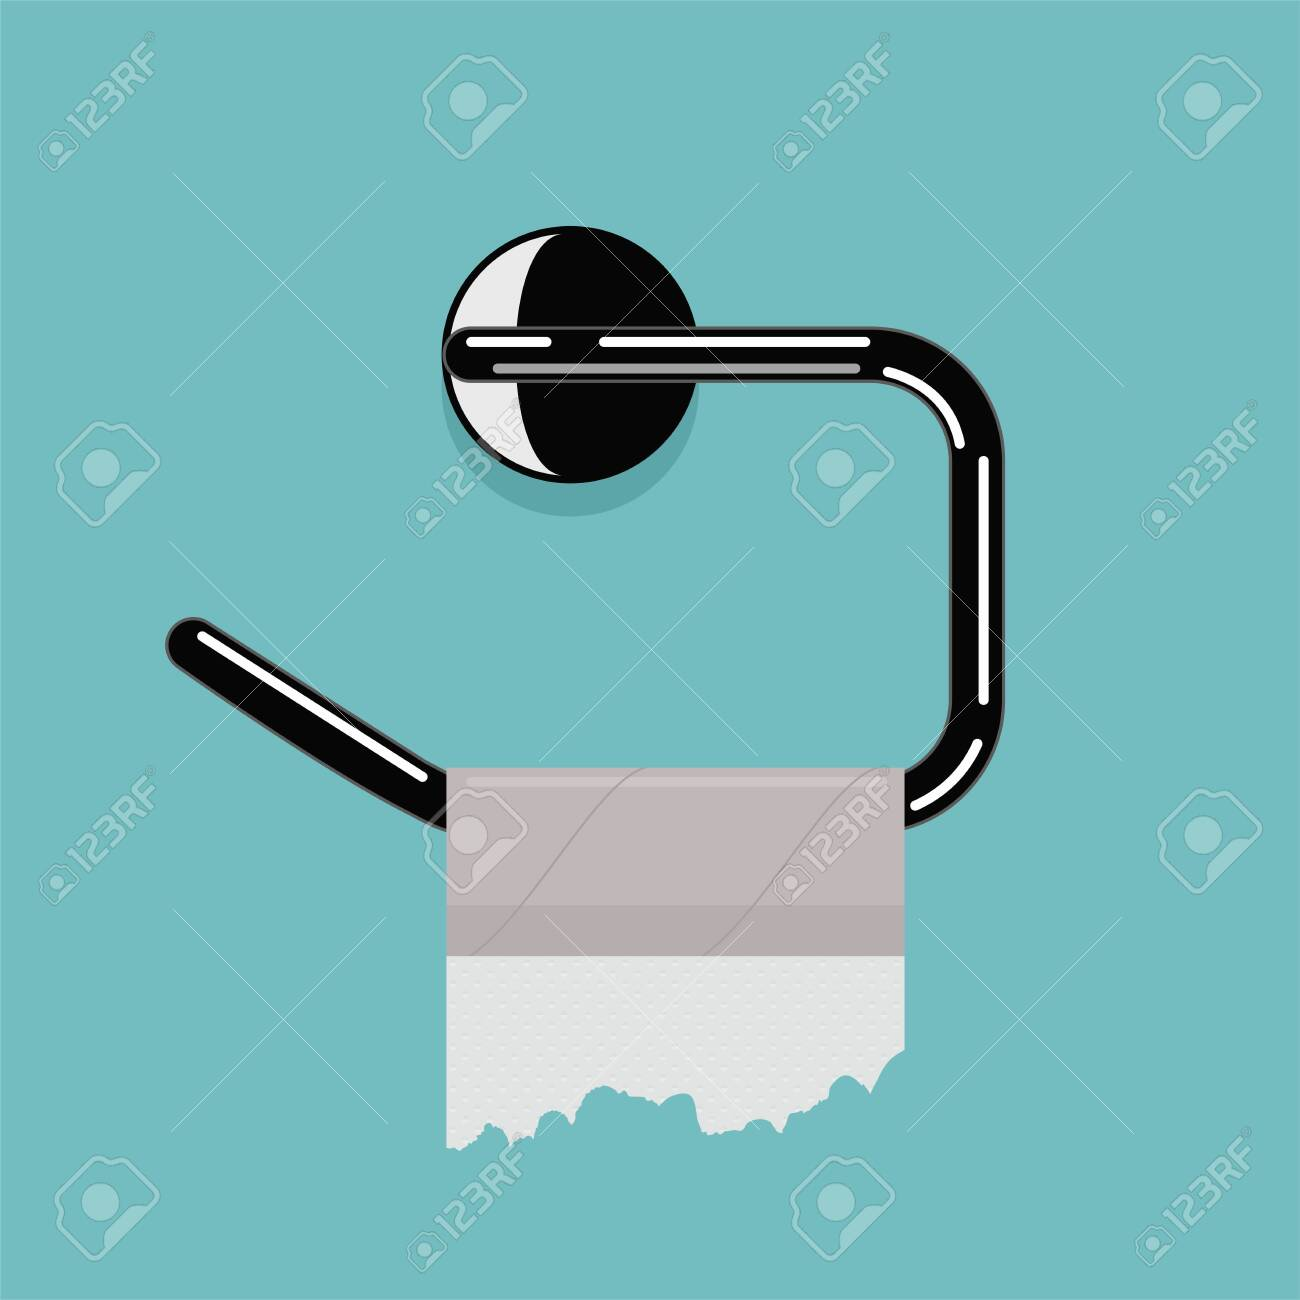 vector empty toilet paper roll and metal holder. hygiene icon of no clean toilet paper in bathroom. flat graphic for household sanitary illustration - 142368970